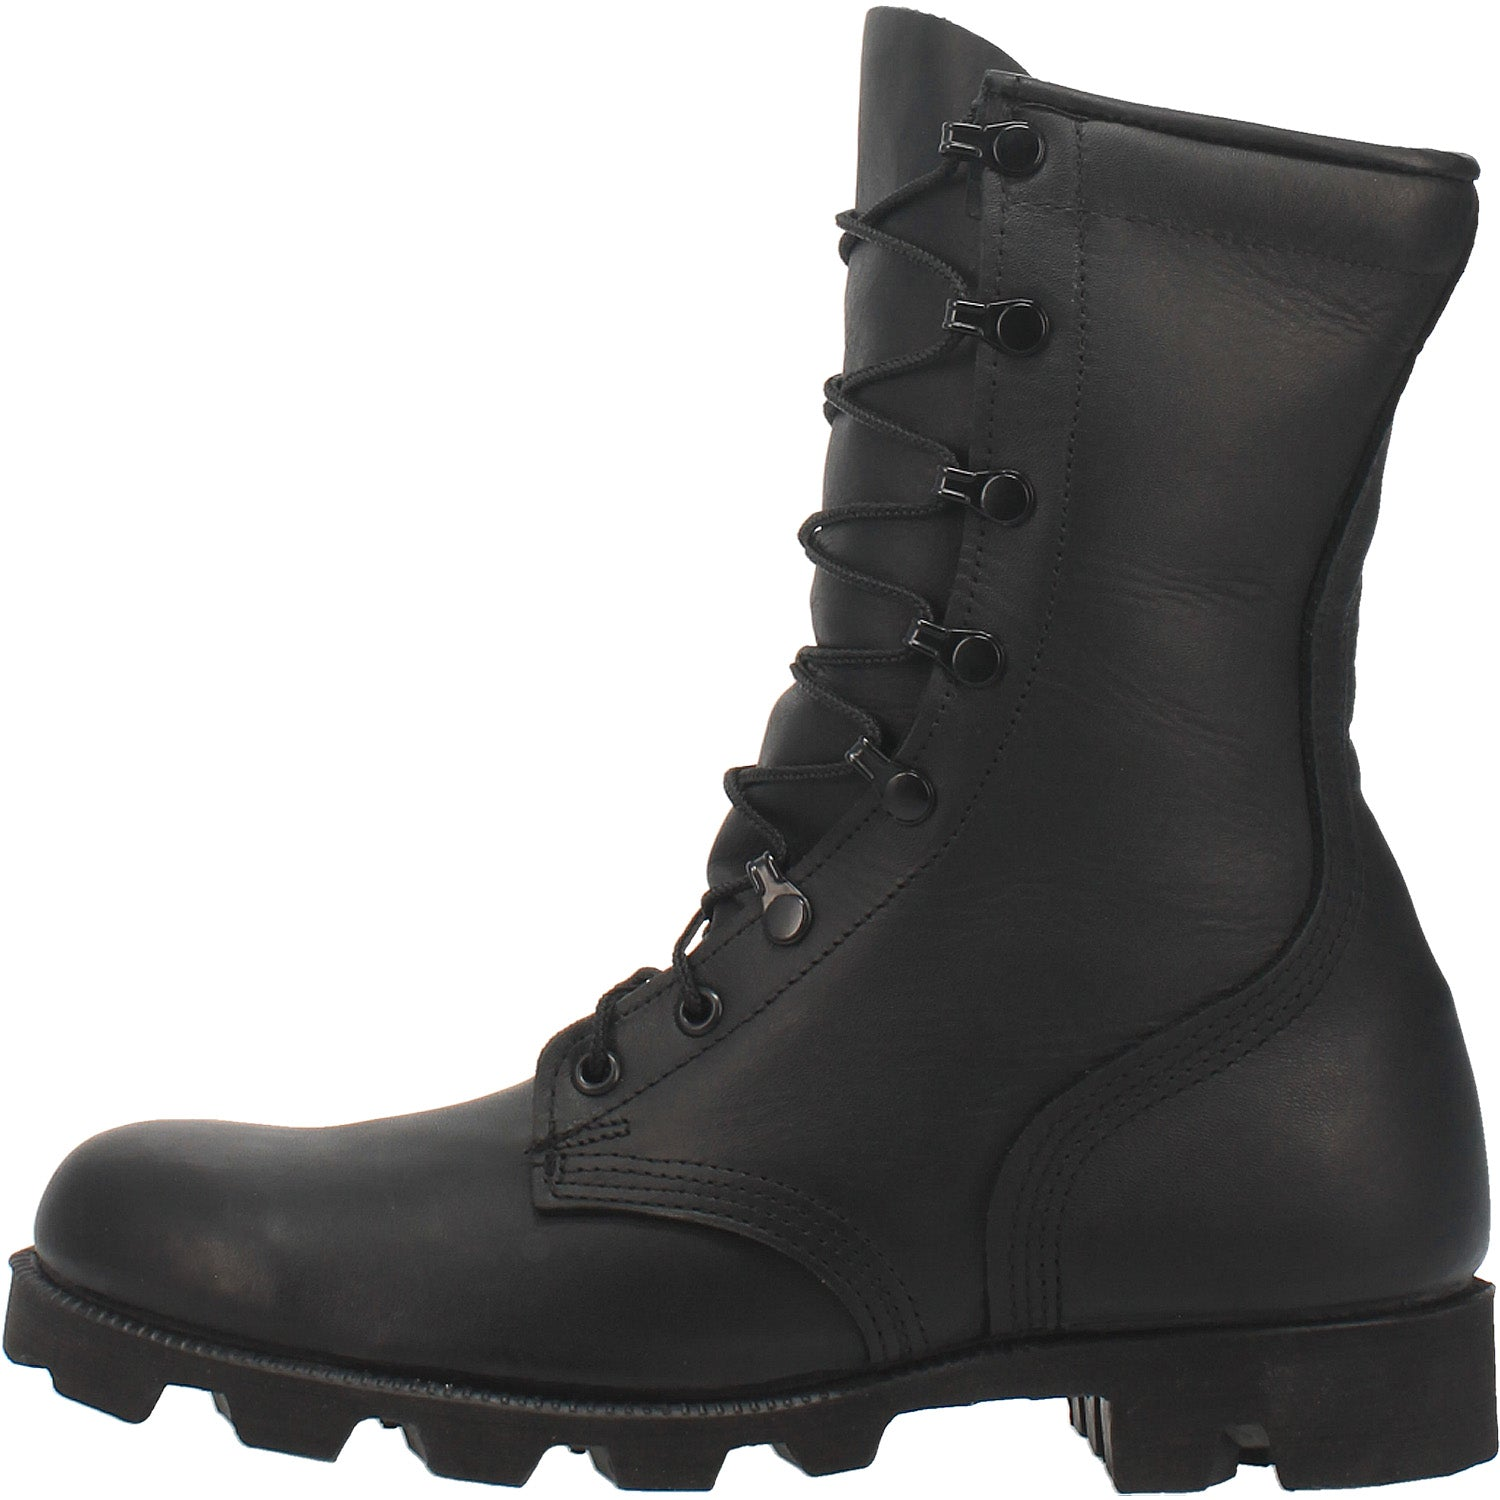 Black All-Leather Combat Boot with Panama Sole 14940722790442